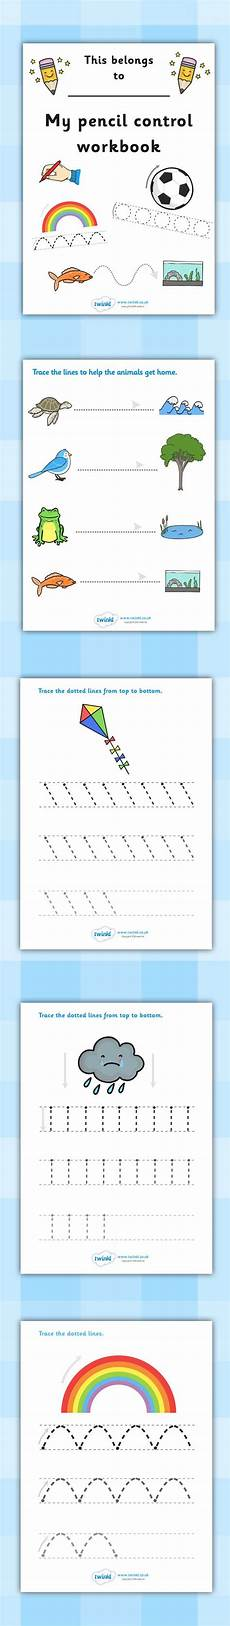 handwriting worksheets primary resources 21549 activities work stations and activities on